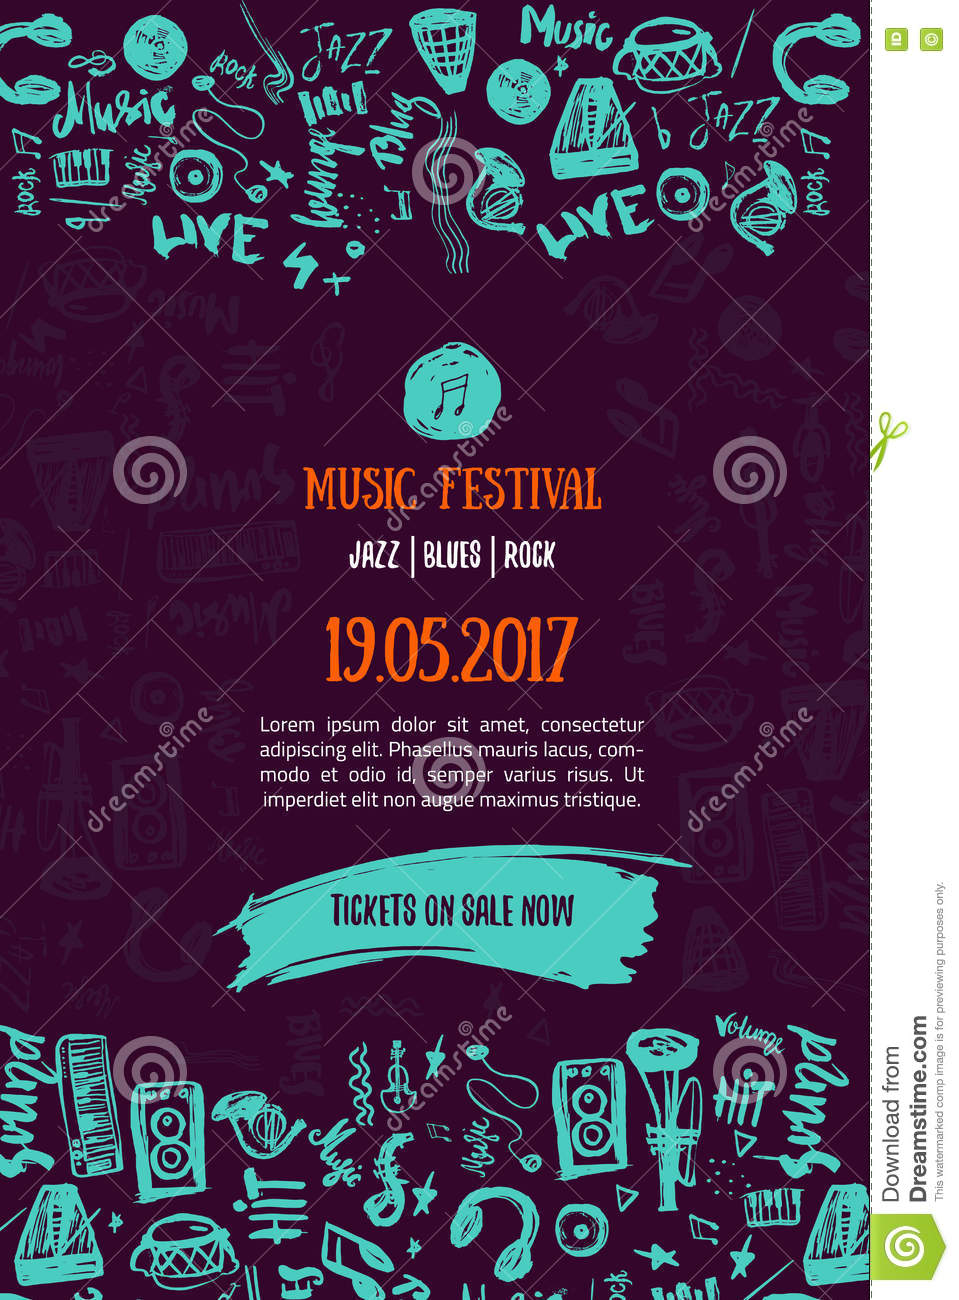 Poster design event - Music Concert Background Festival Modern Flyer Vector Illustration Music Event Poster Template Design